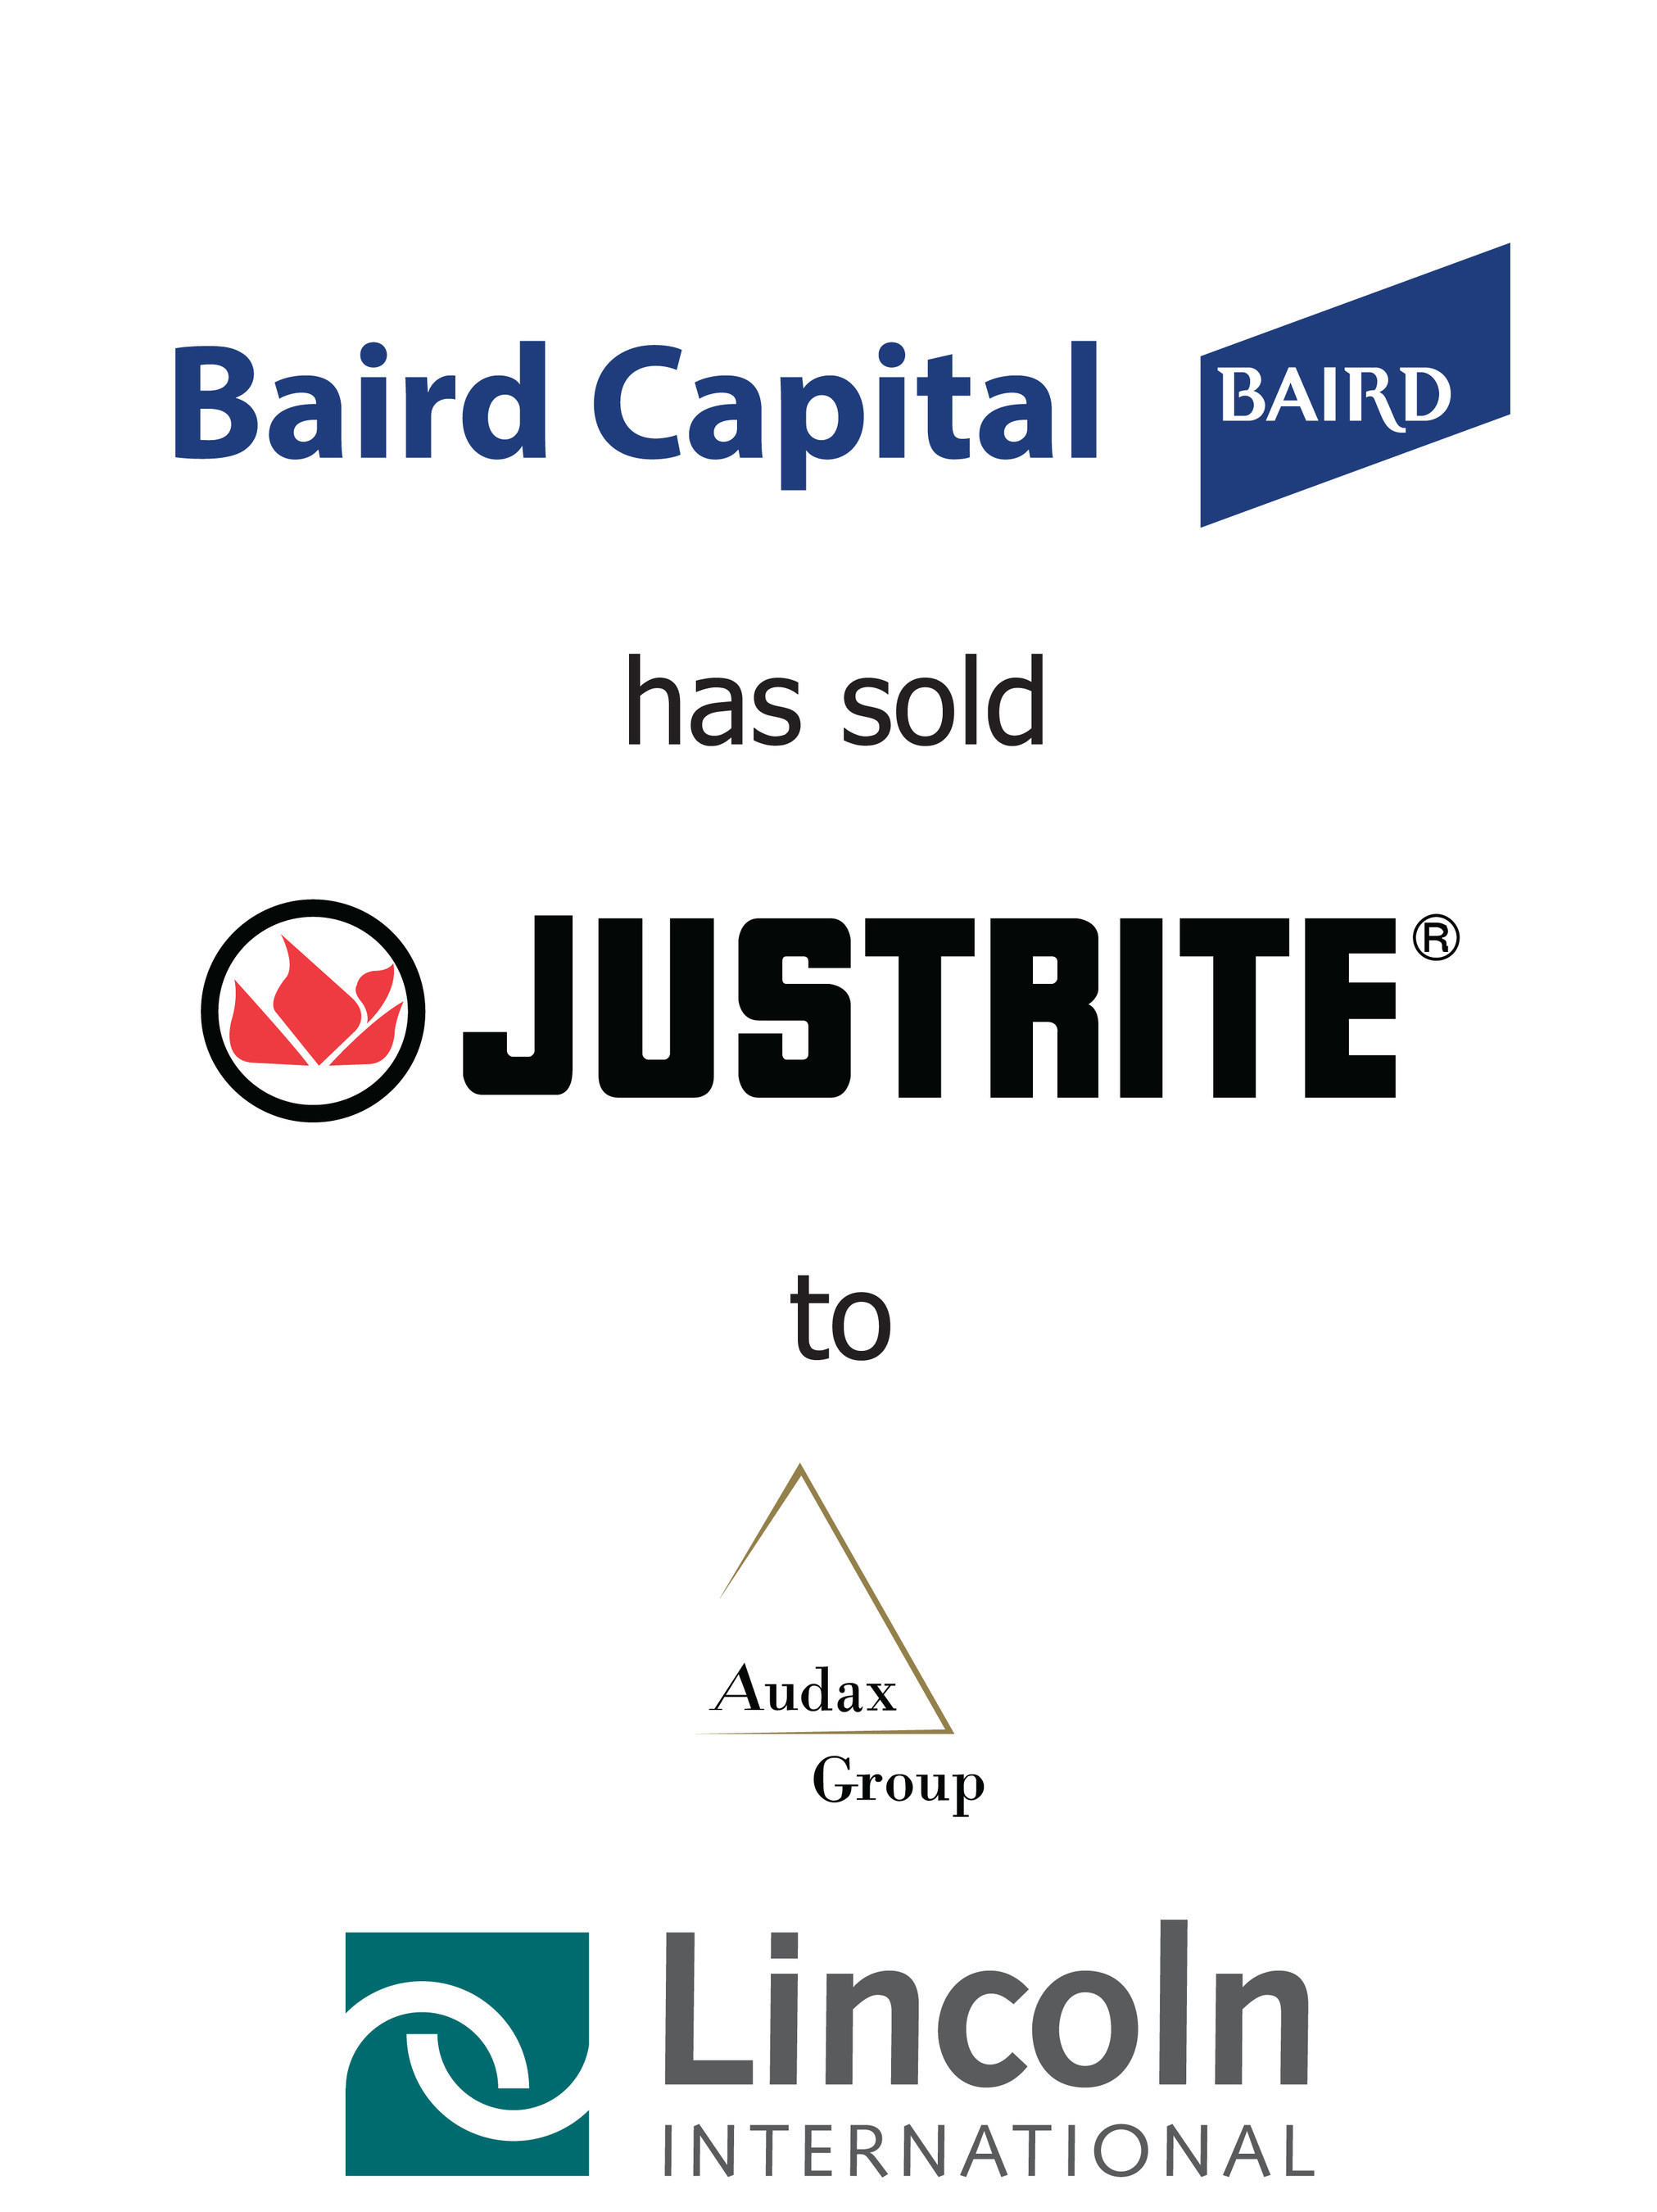 Lincoln International represents Baird Capital in the sale of Justrite to Audax Group